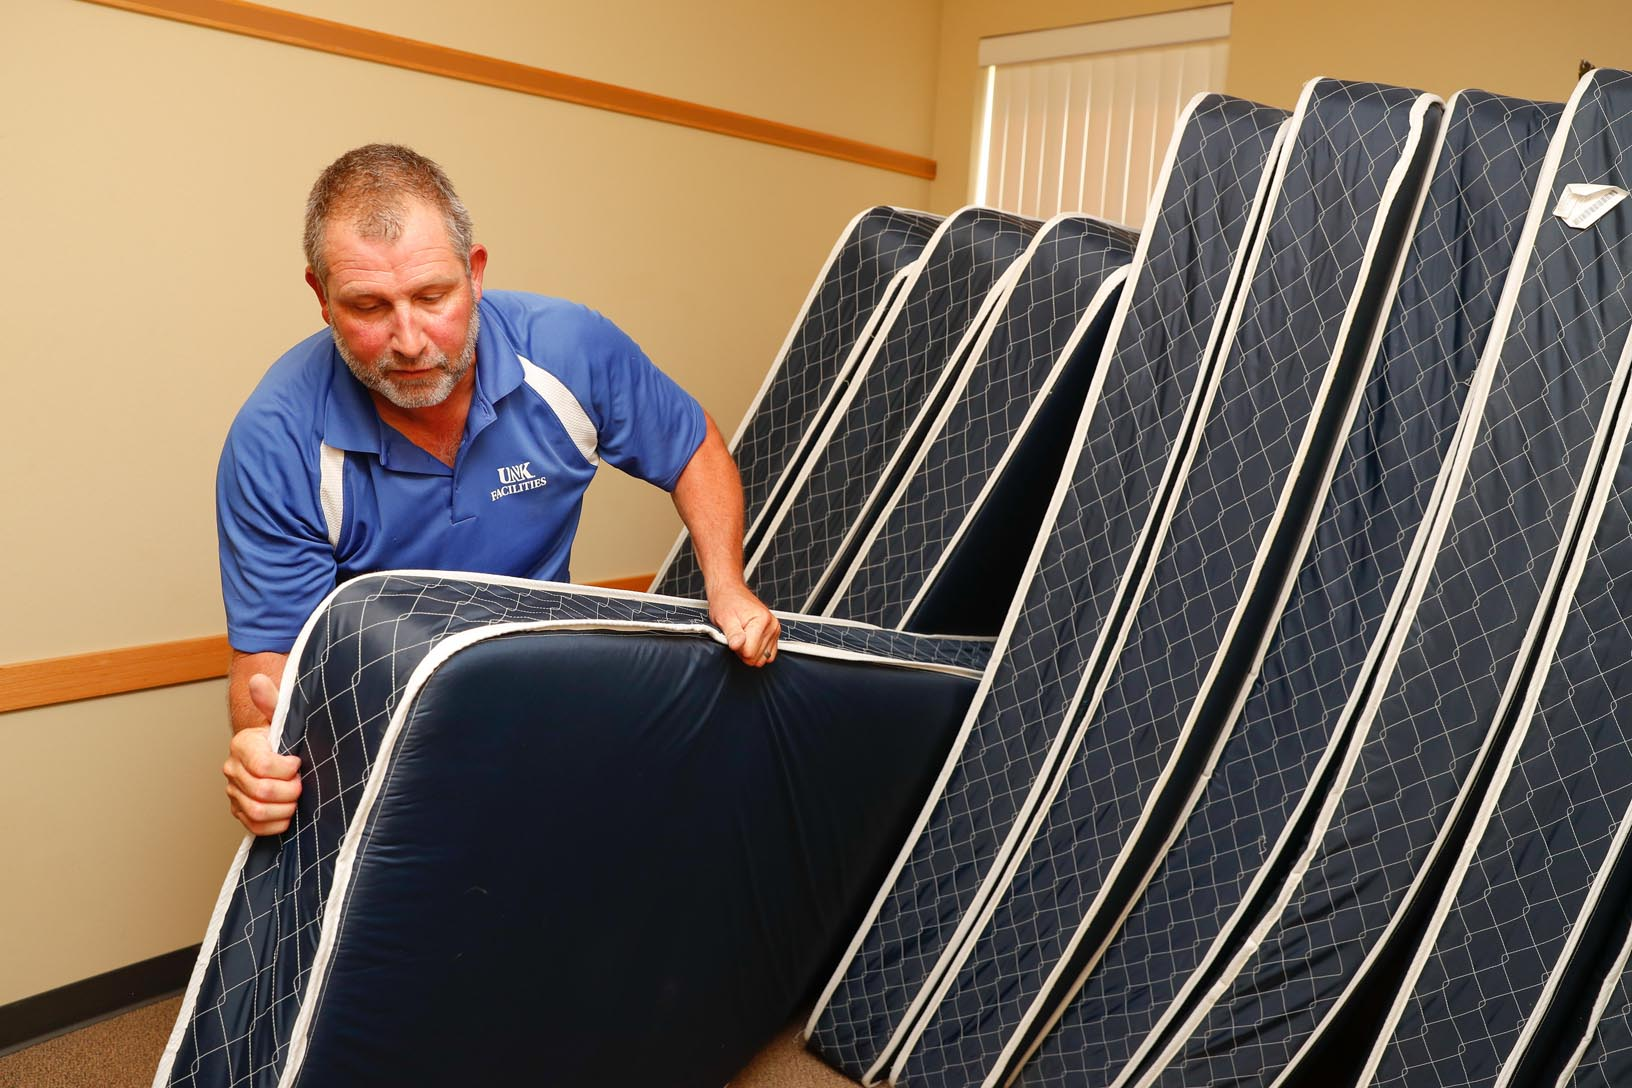 Dave White with UNK Facilities Management helps replace the mattresses inside a residence hall at the university. The used mattresses were donated to three charitable groups. (Photo by Corbey R. Dorsey, UNK Communications)